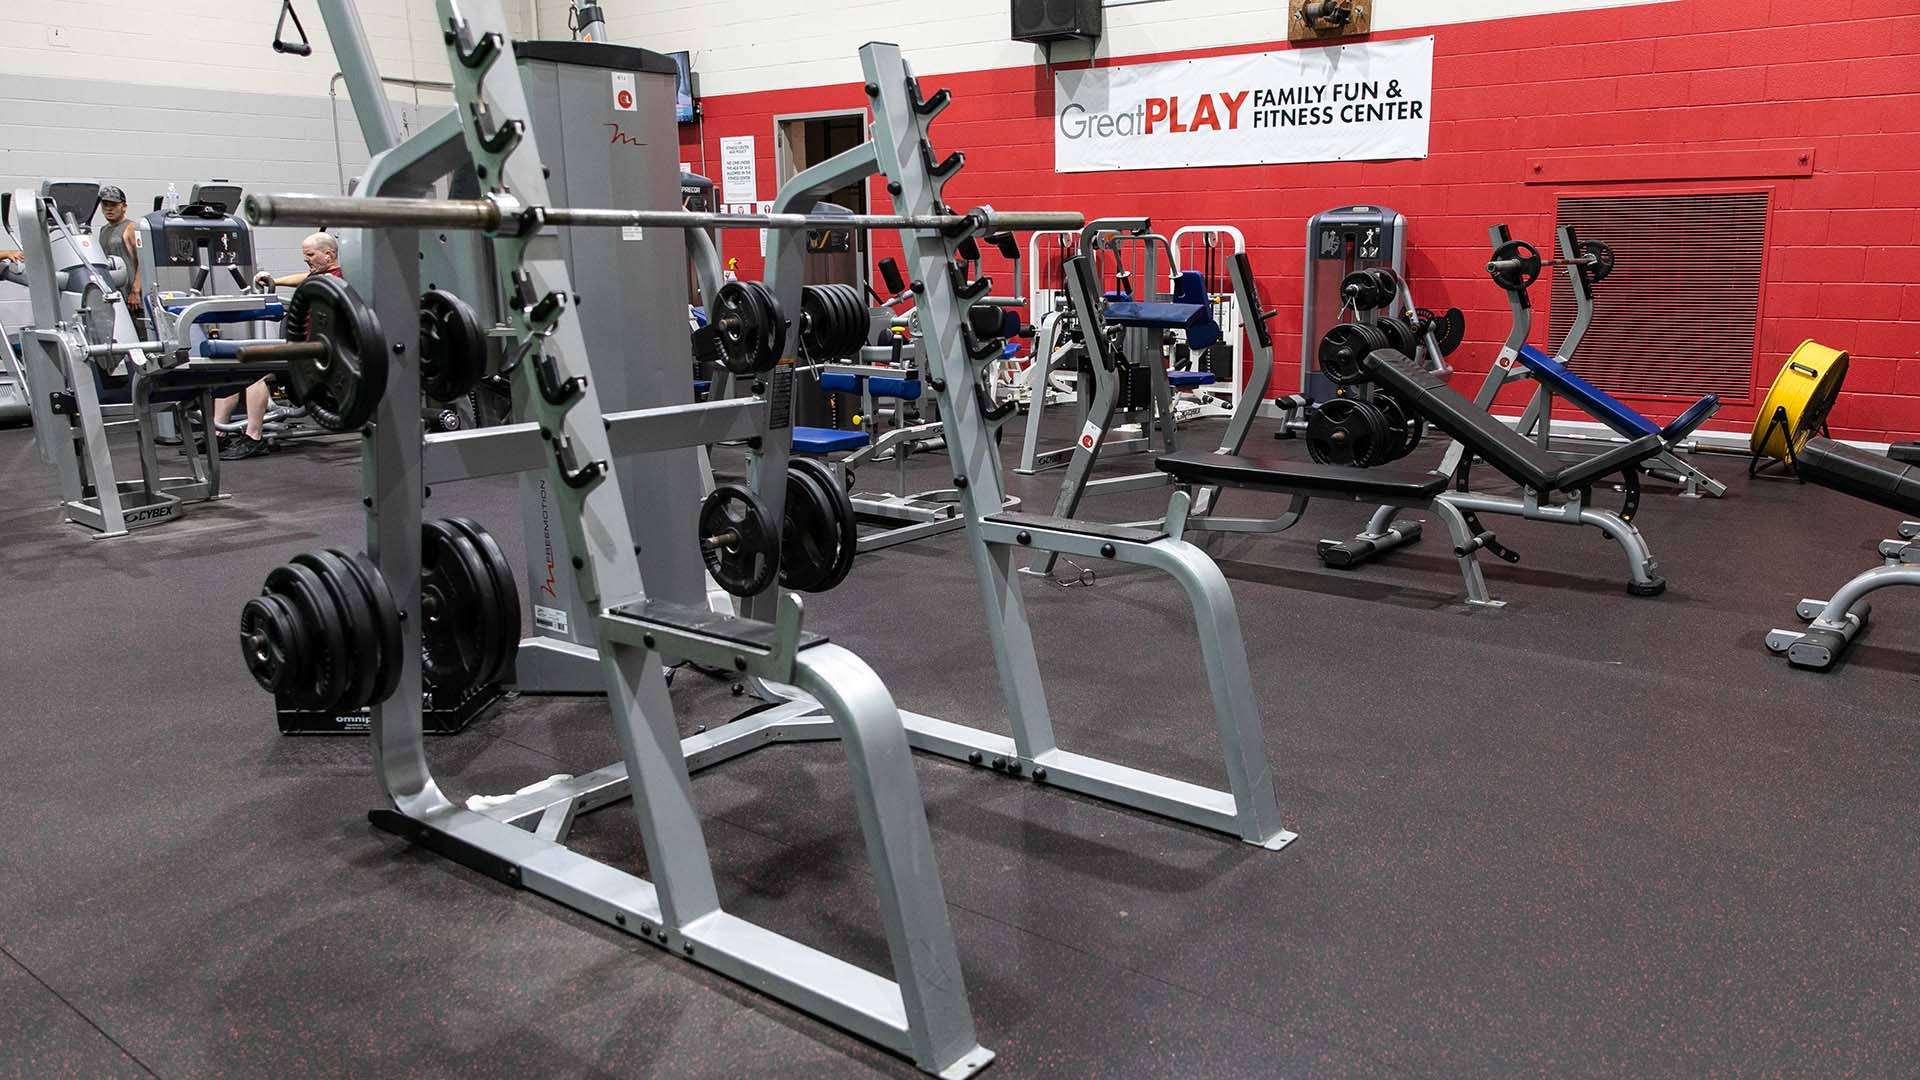 workout facility at greatplay to get exercise in